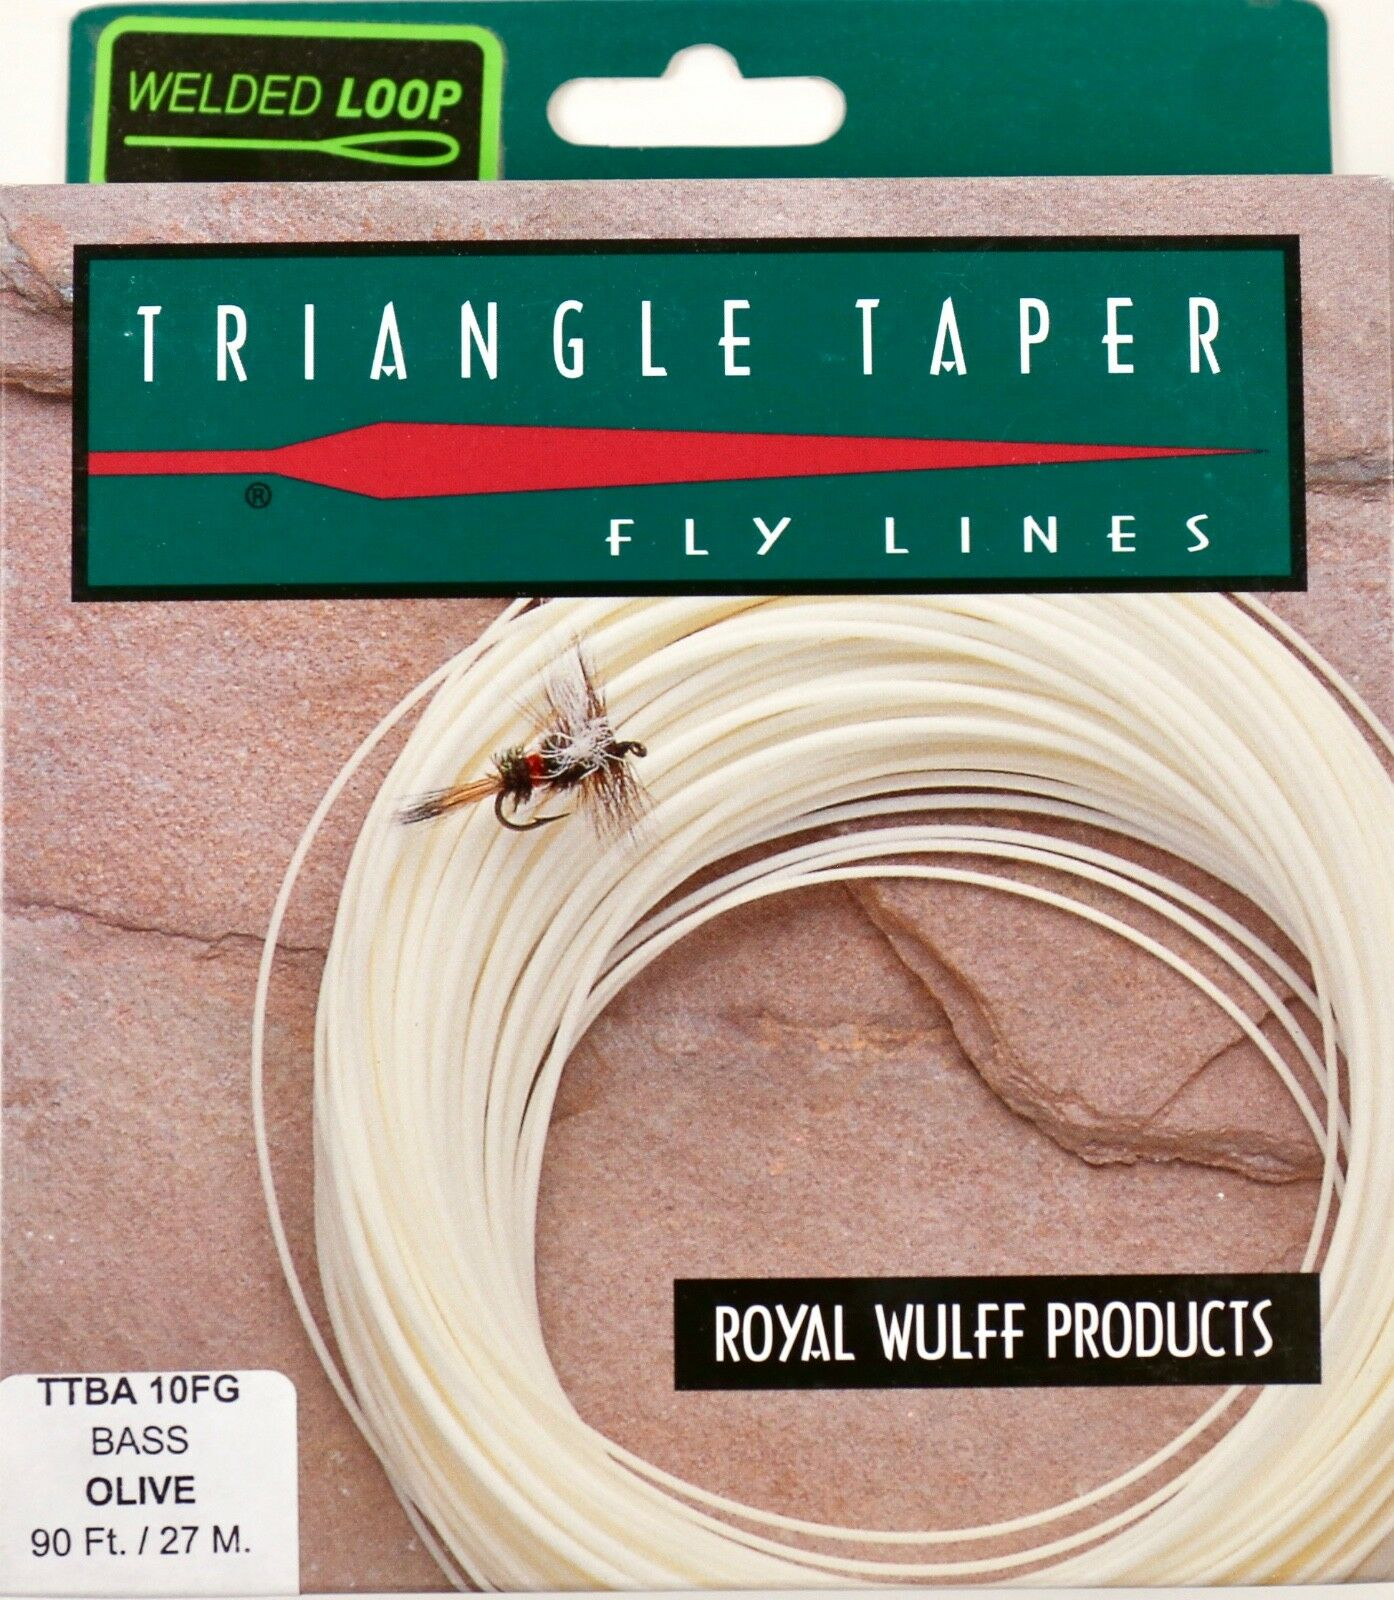 Royal Wulff Bass Triangle Taper 10 WT Fly Line Olive Free Fast Shipping TTBA10FG